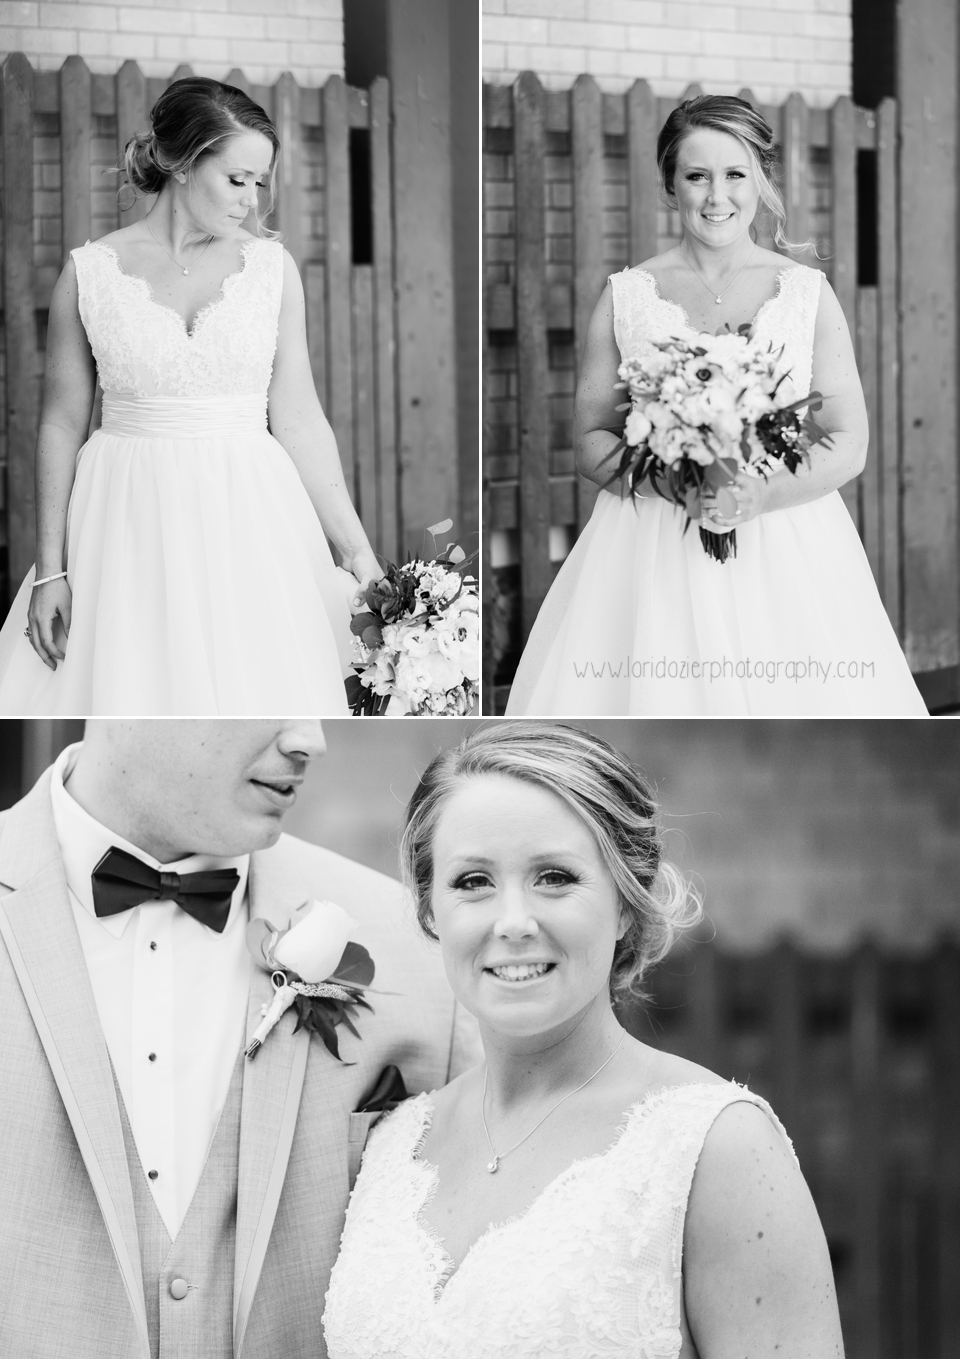 minneapolis wedding photography 6